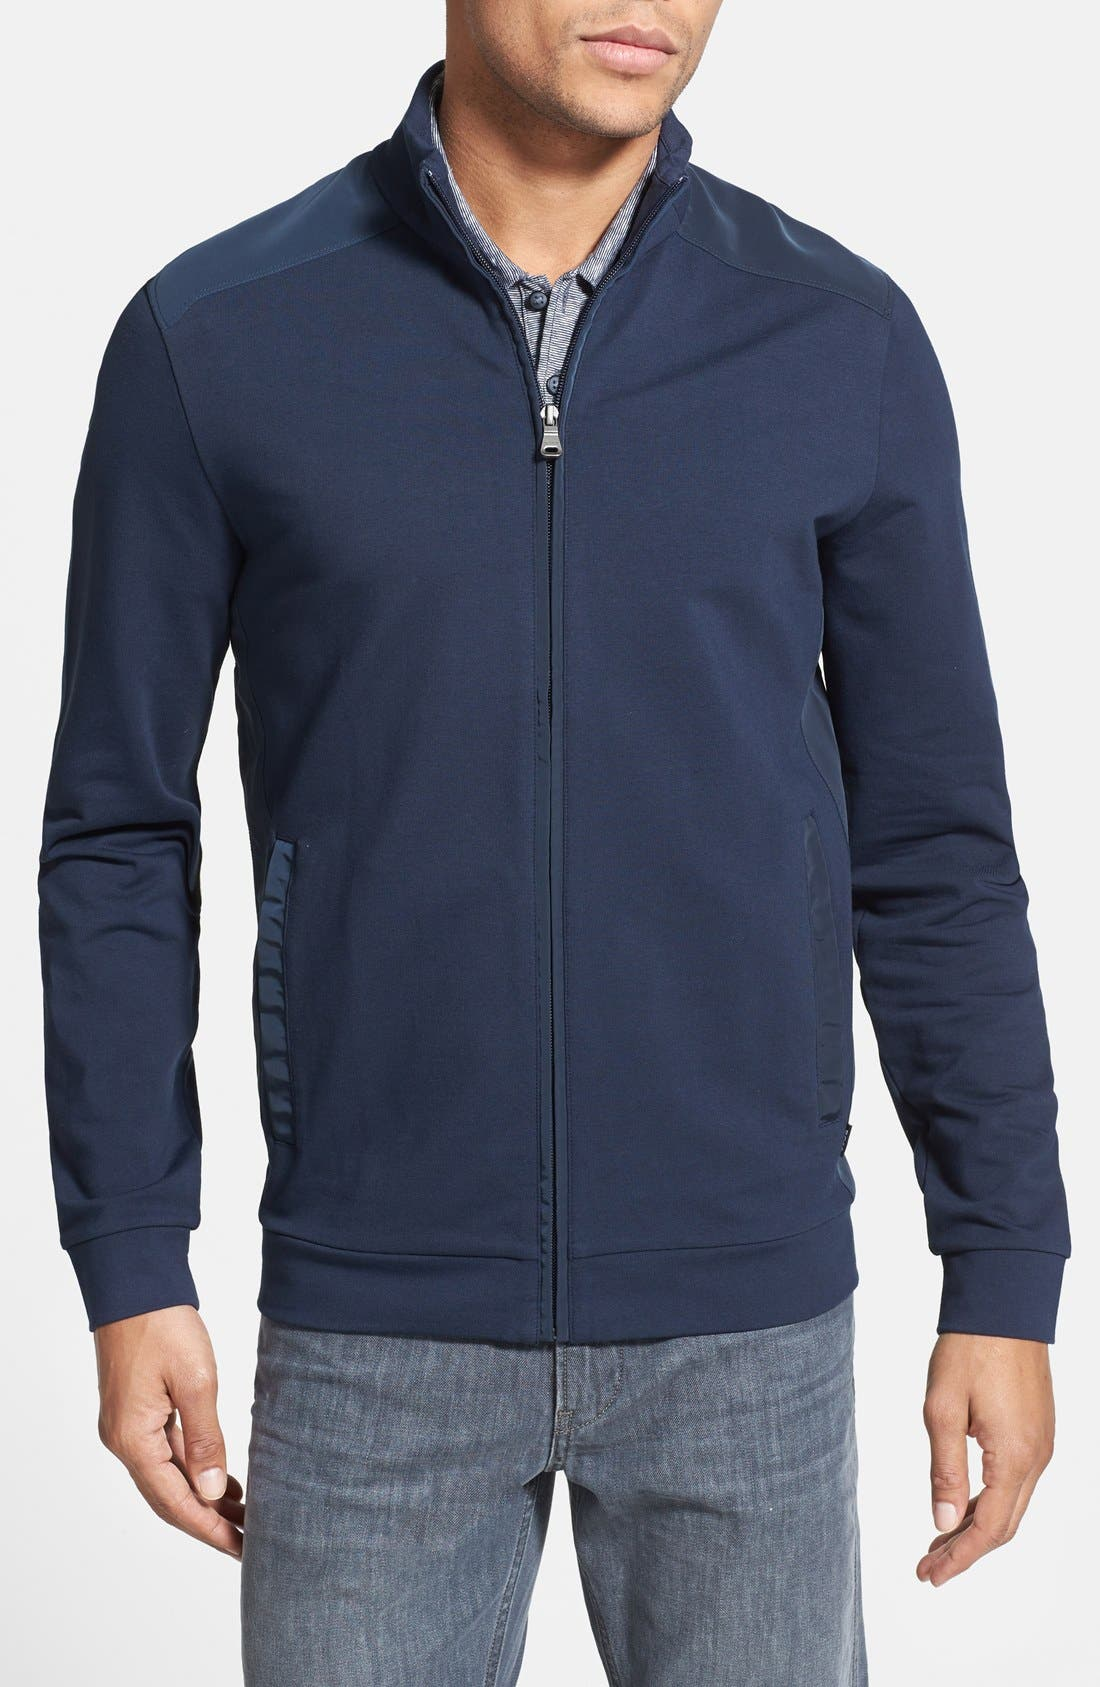 Main Image - BOSS HUGO BOSS 'Cannobio 63' Front Zip Sweater